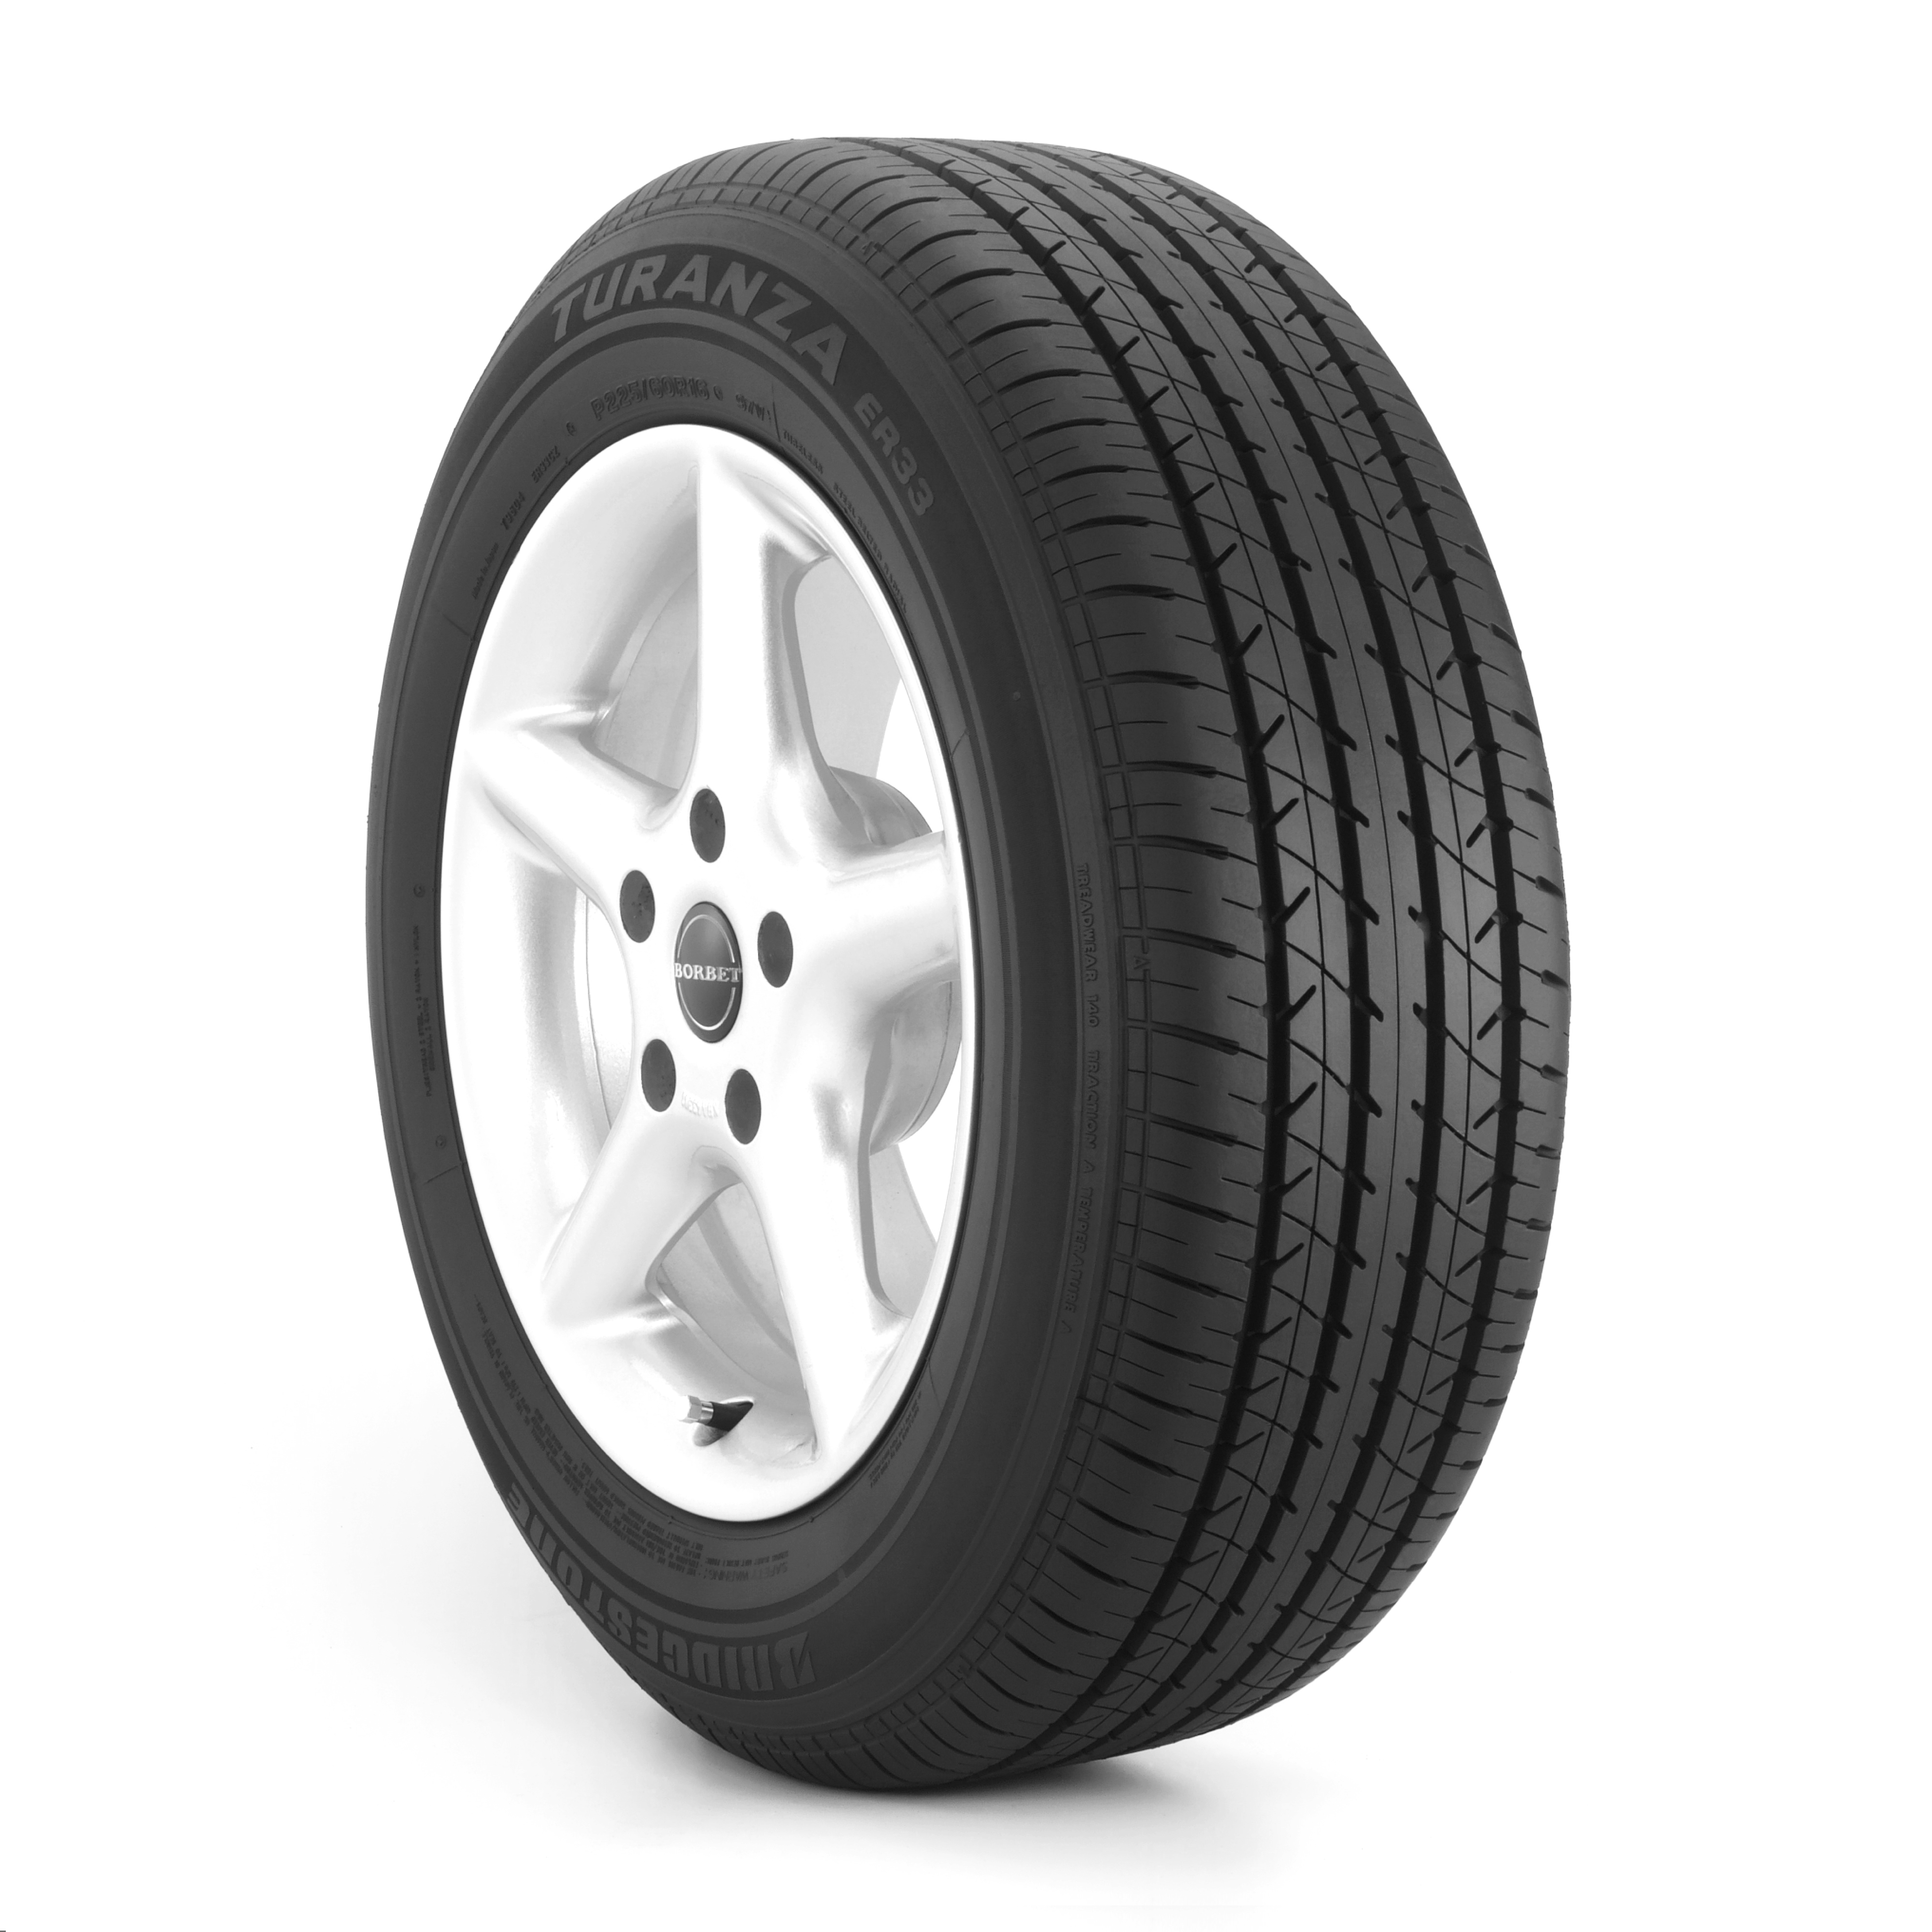 Turanza ER33 Run-Flat Technology Tyre